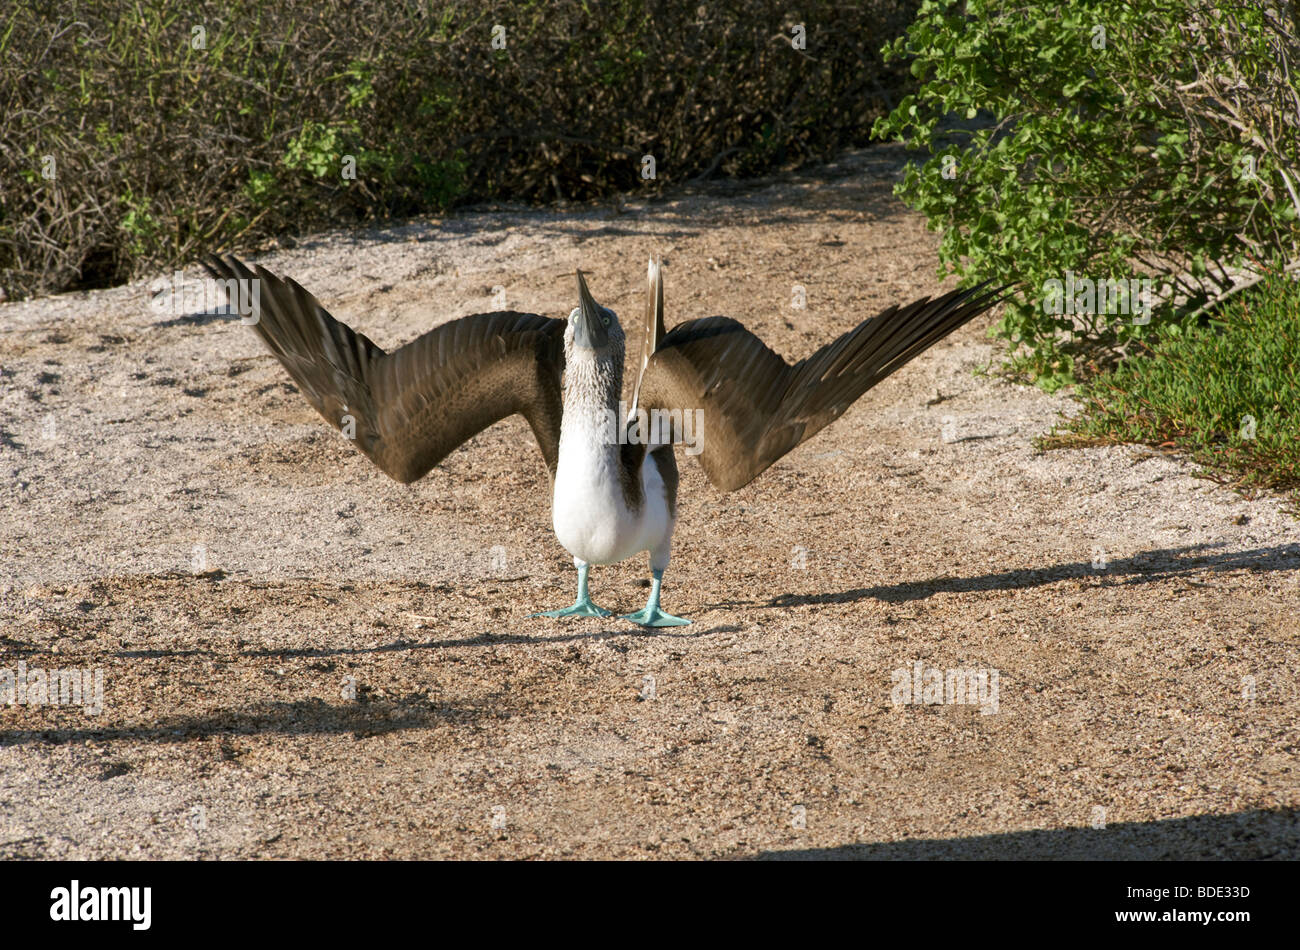 Blue footed Booby birds at breeding grounds in May on Espanola, Galapagos Islands, Pacific Ocean. - Stock Image